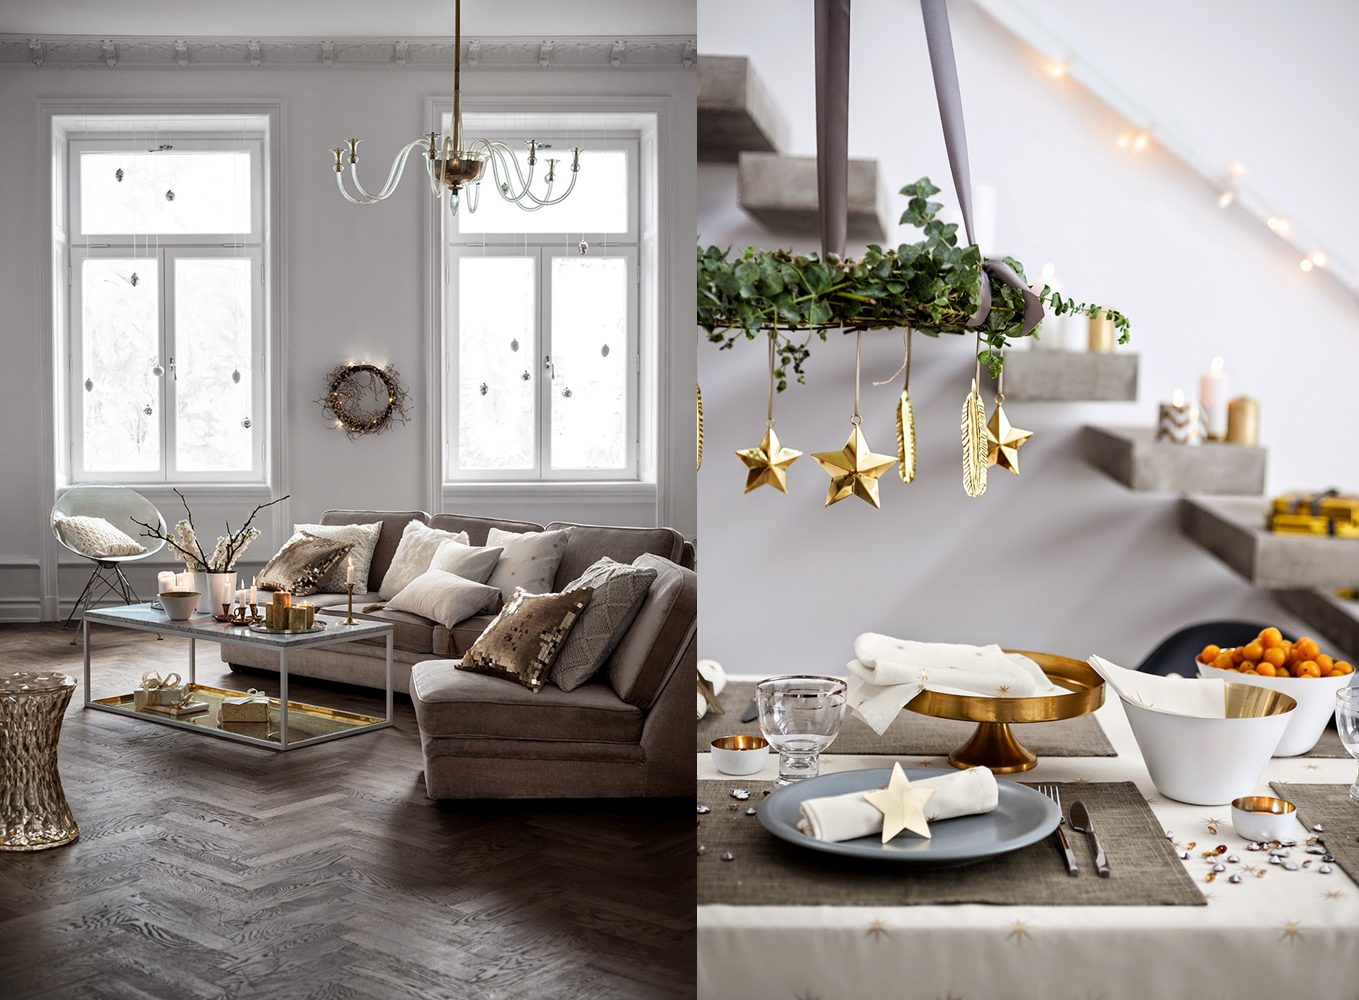 Decoraci n f cil tendencias navidad 2014 2015 segun h m home for Decoracion hogar tendencias 2015